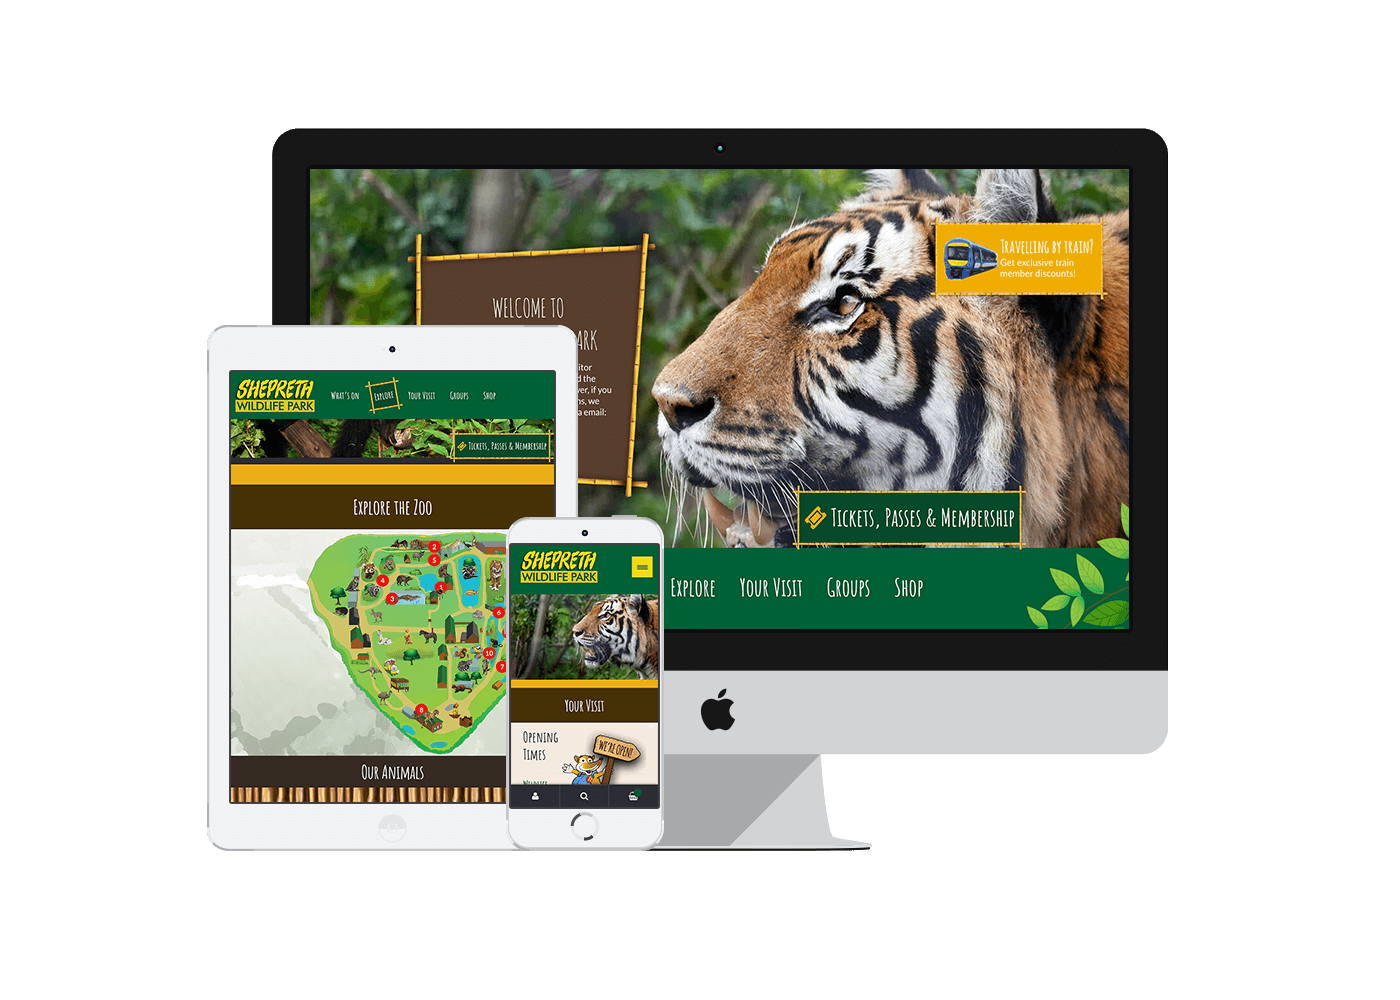 Ecommerce website for Shepreth Wildlife Park